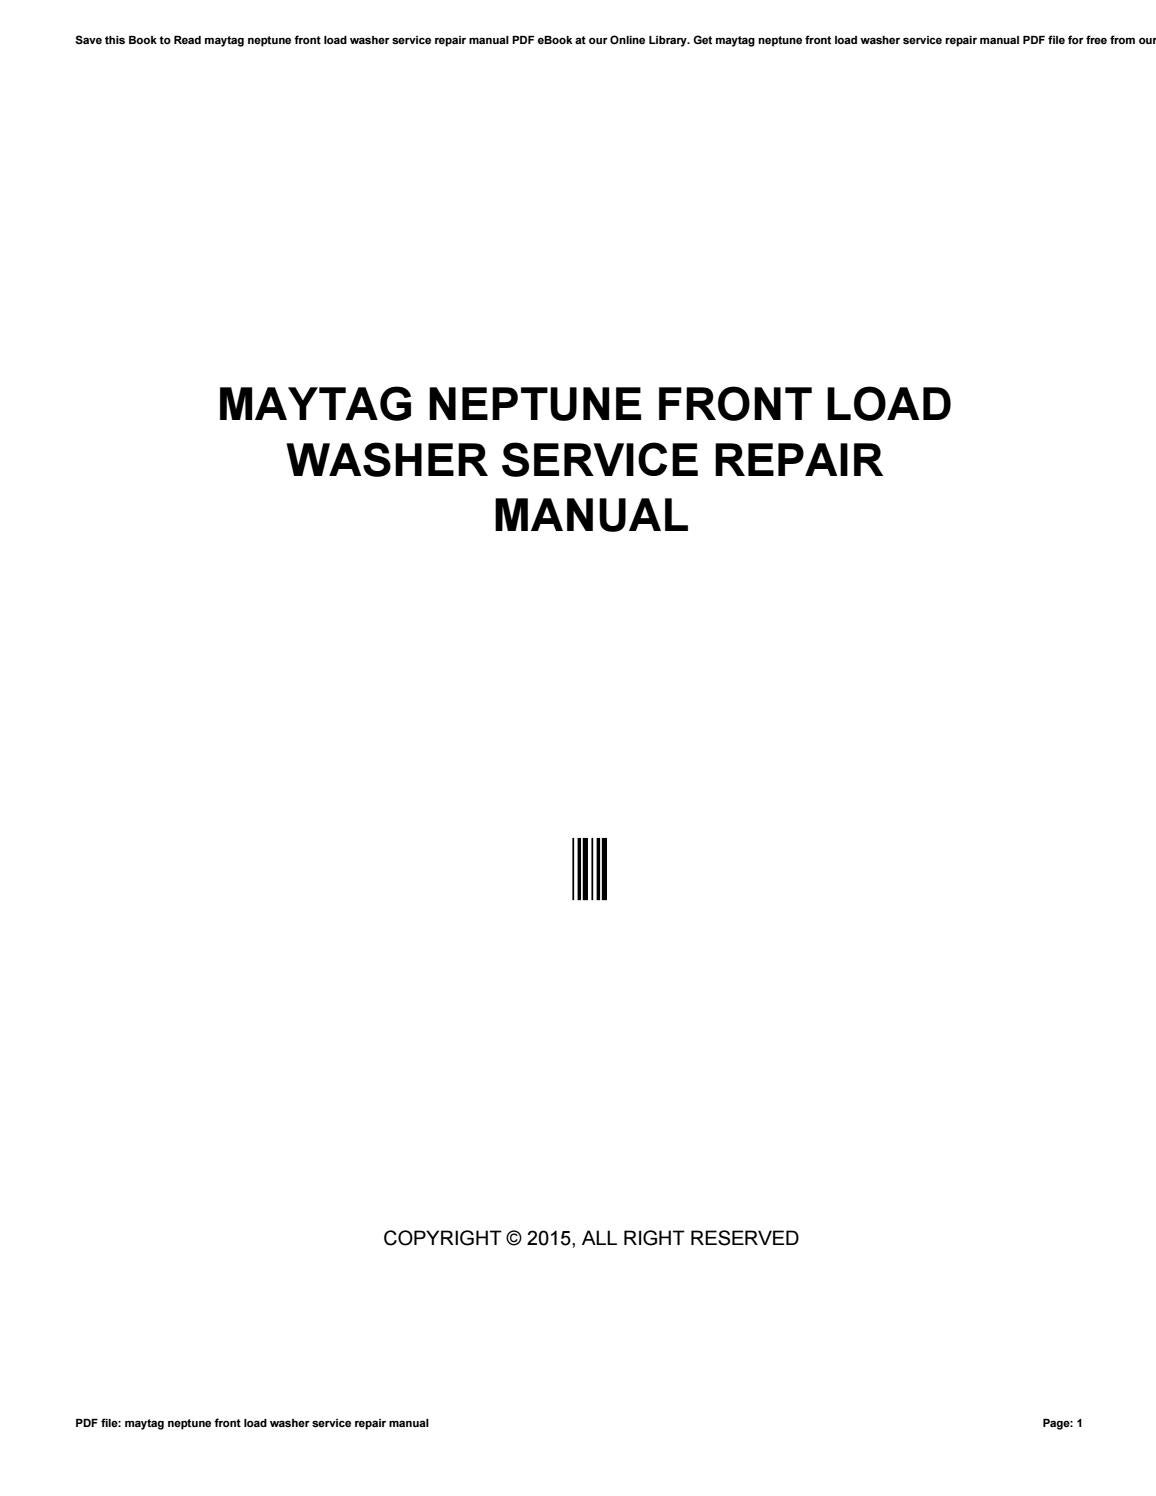 maytag front load washer instructions